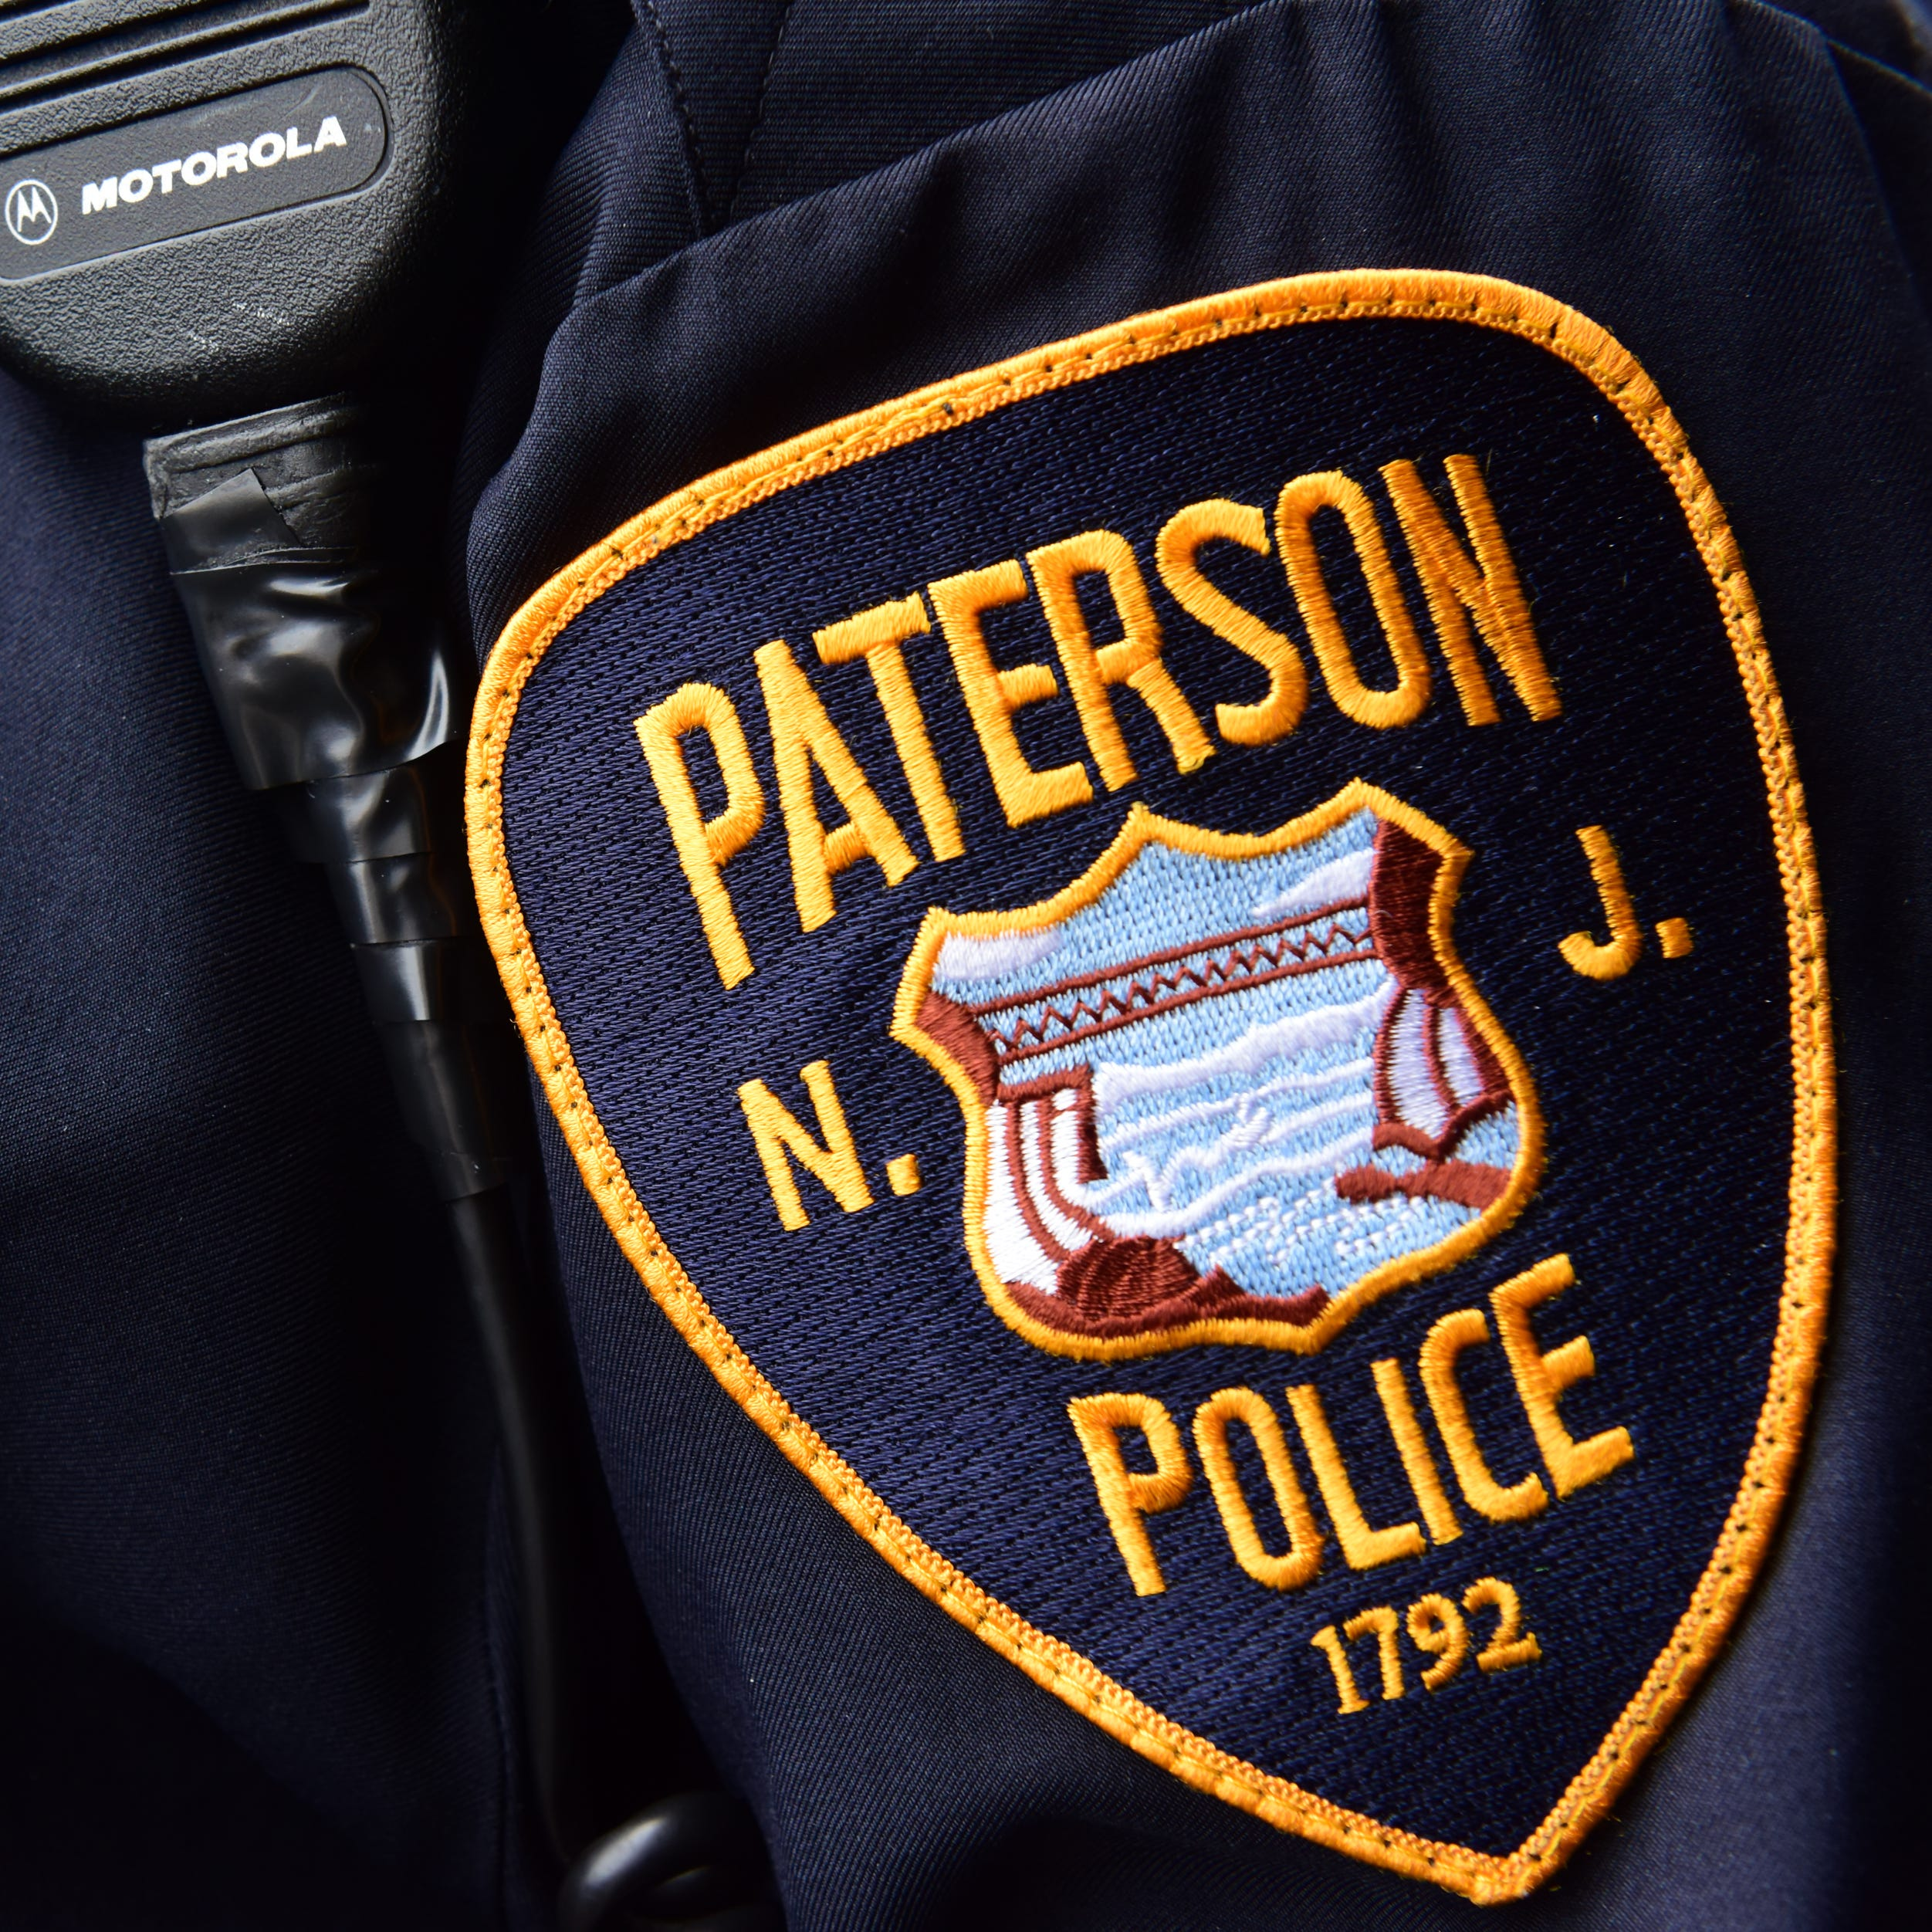 Unions: Paterson layoff plan would cut 112 police officers